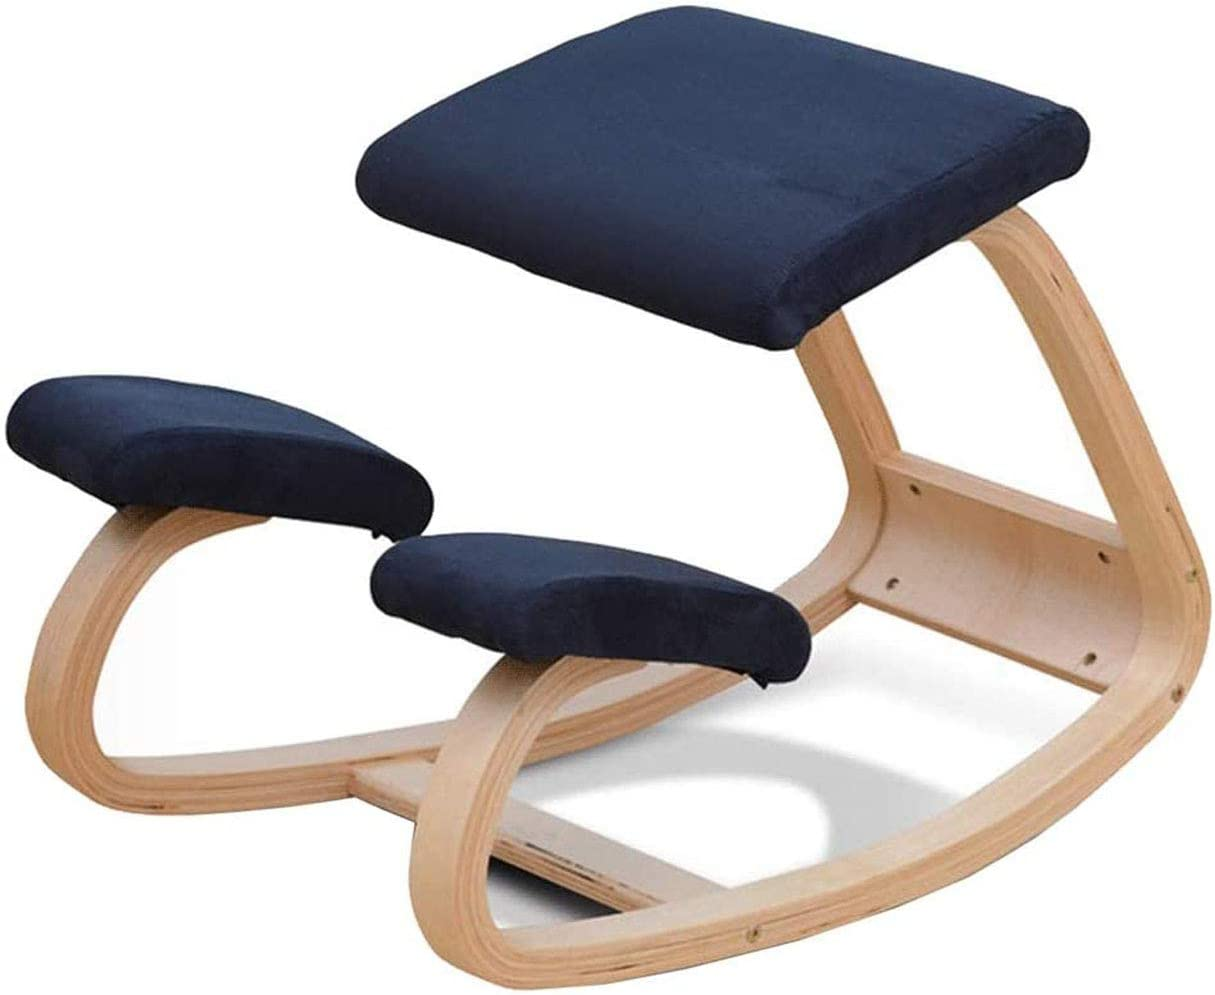 store Kneeling Chair Ergonomic Rocking Kneel Mobile Relieving Free Shipping New S Seat